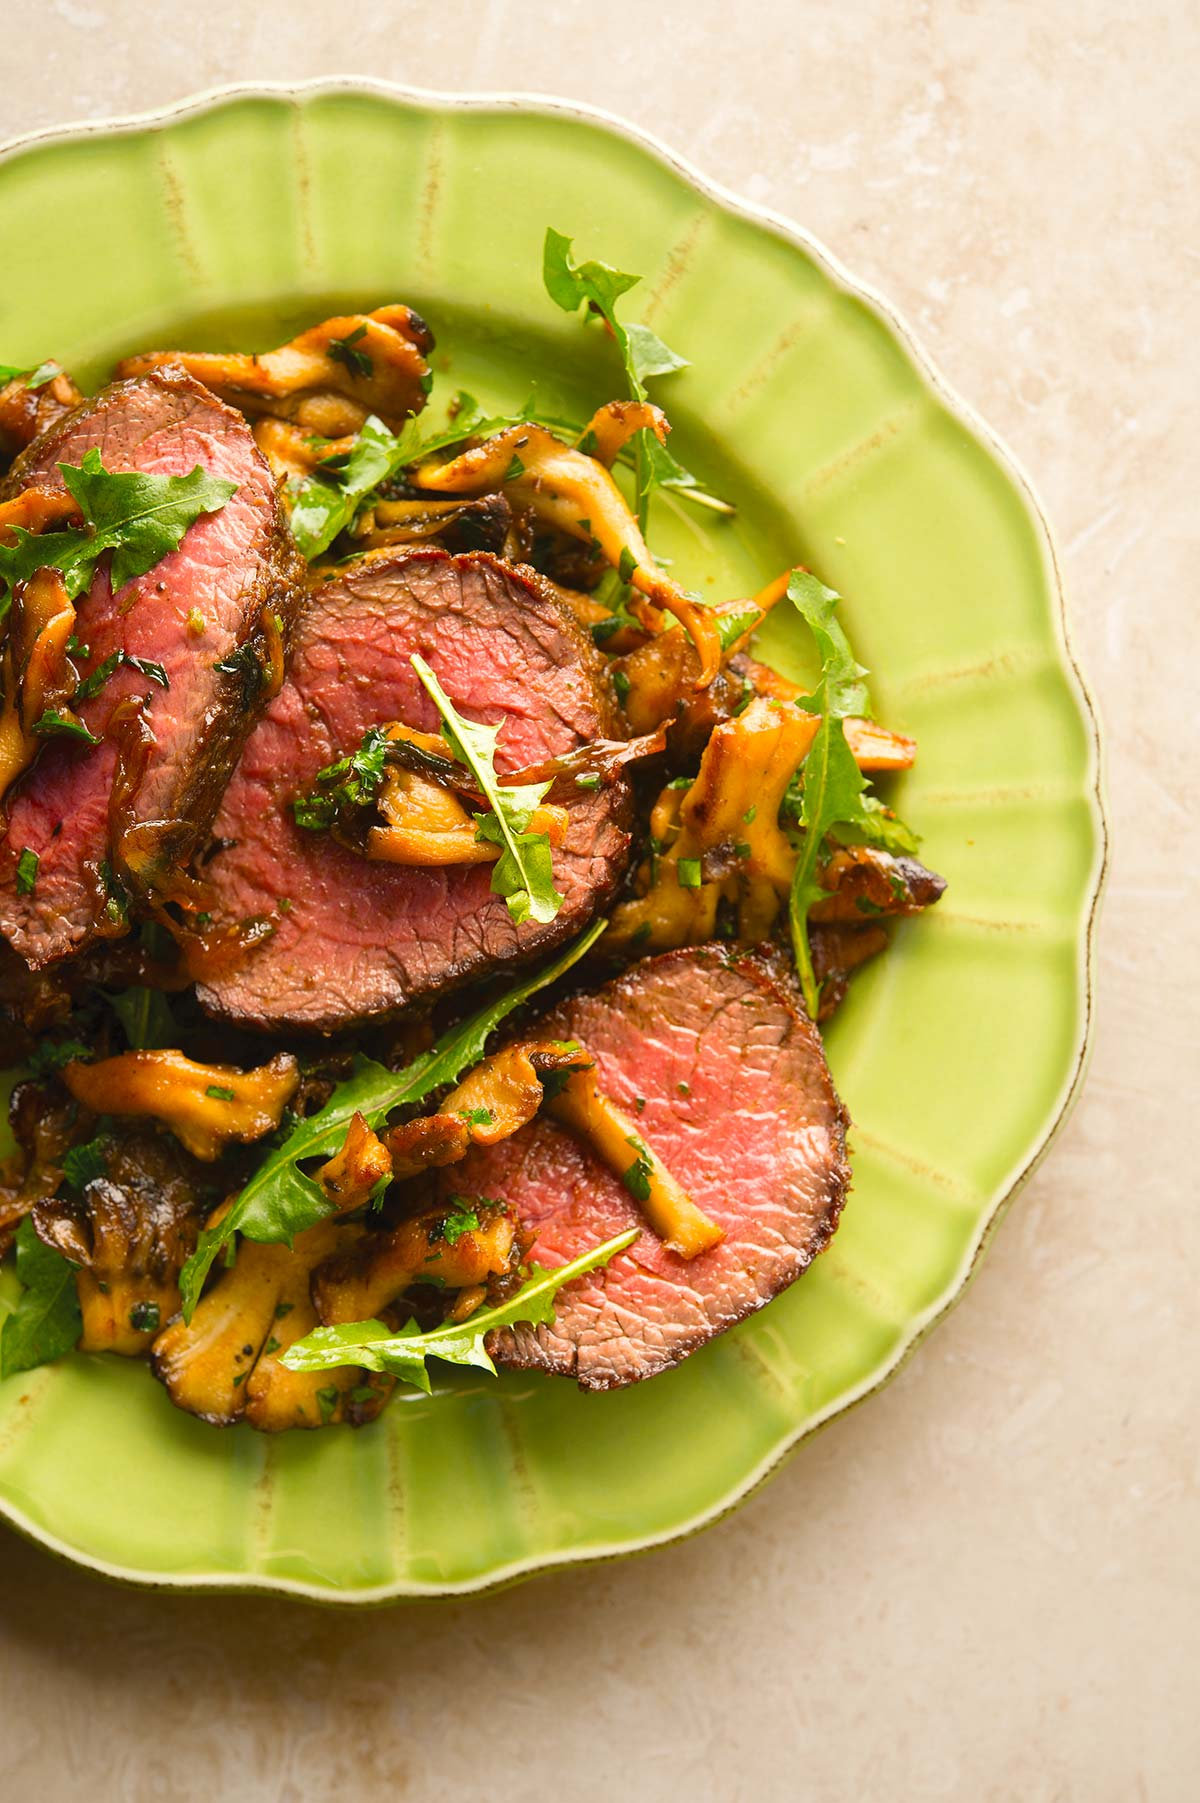 Venison steak with caramelized onions on a plate